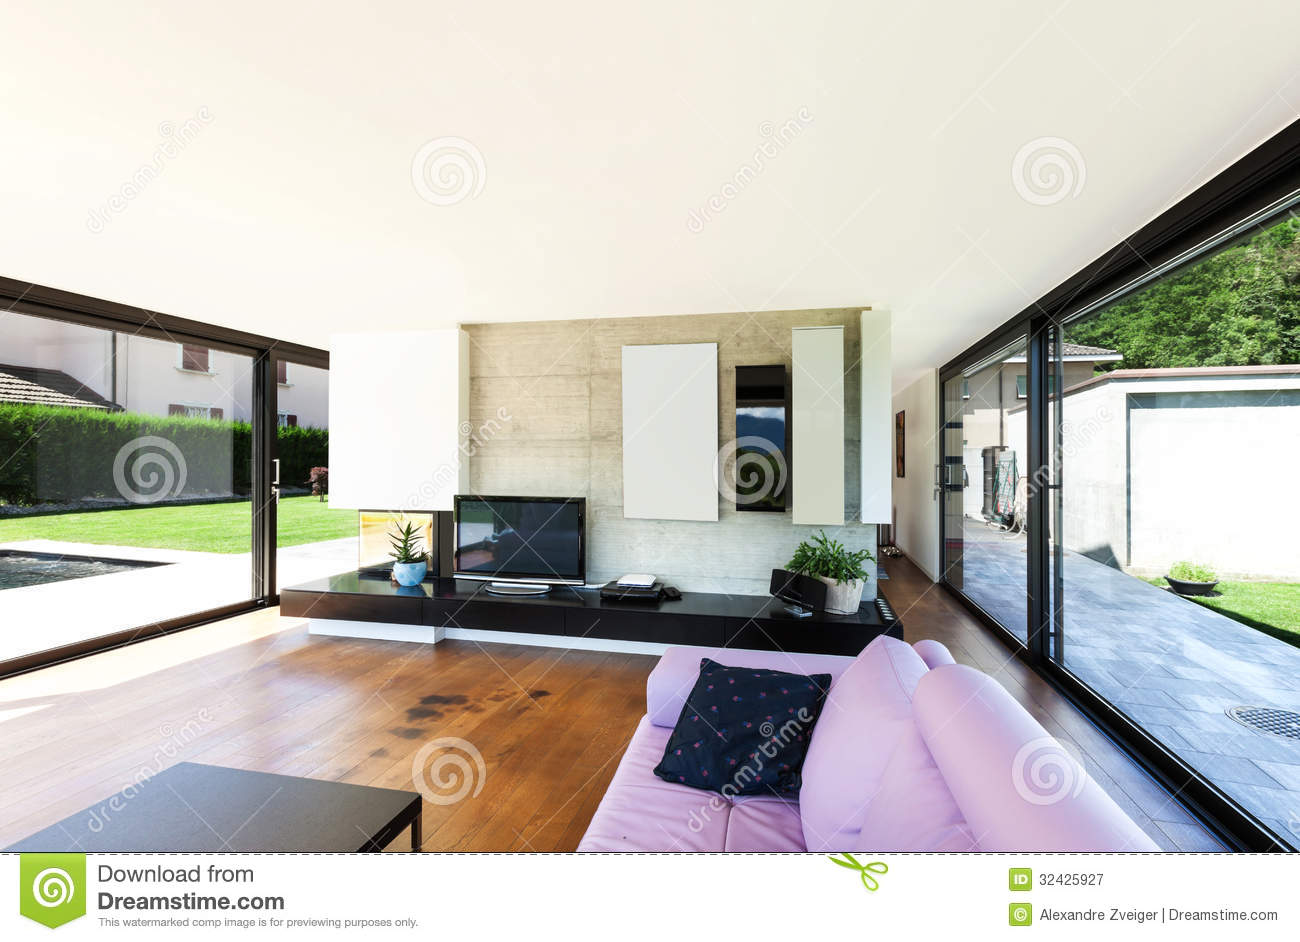 Modern villa interior royalty free stock photography image 32425927 - Modern villa interieur ...